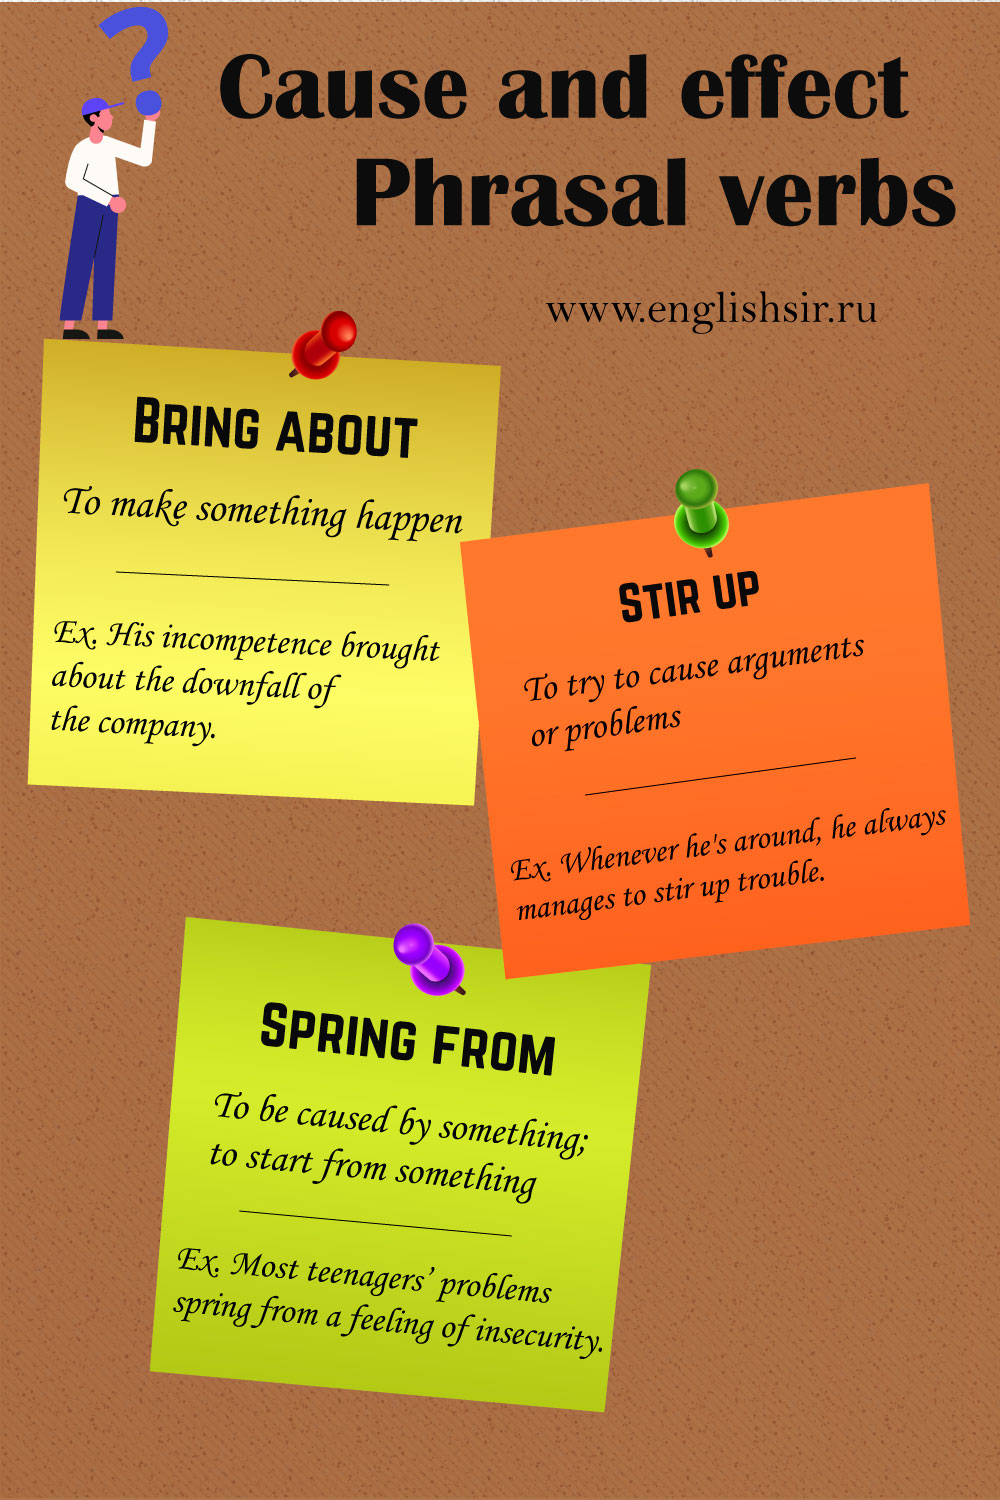 cause and effect phrasal verbs